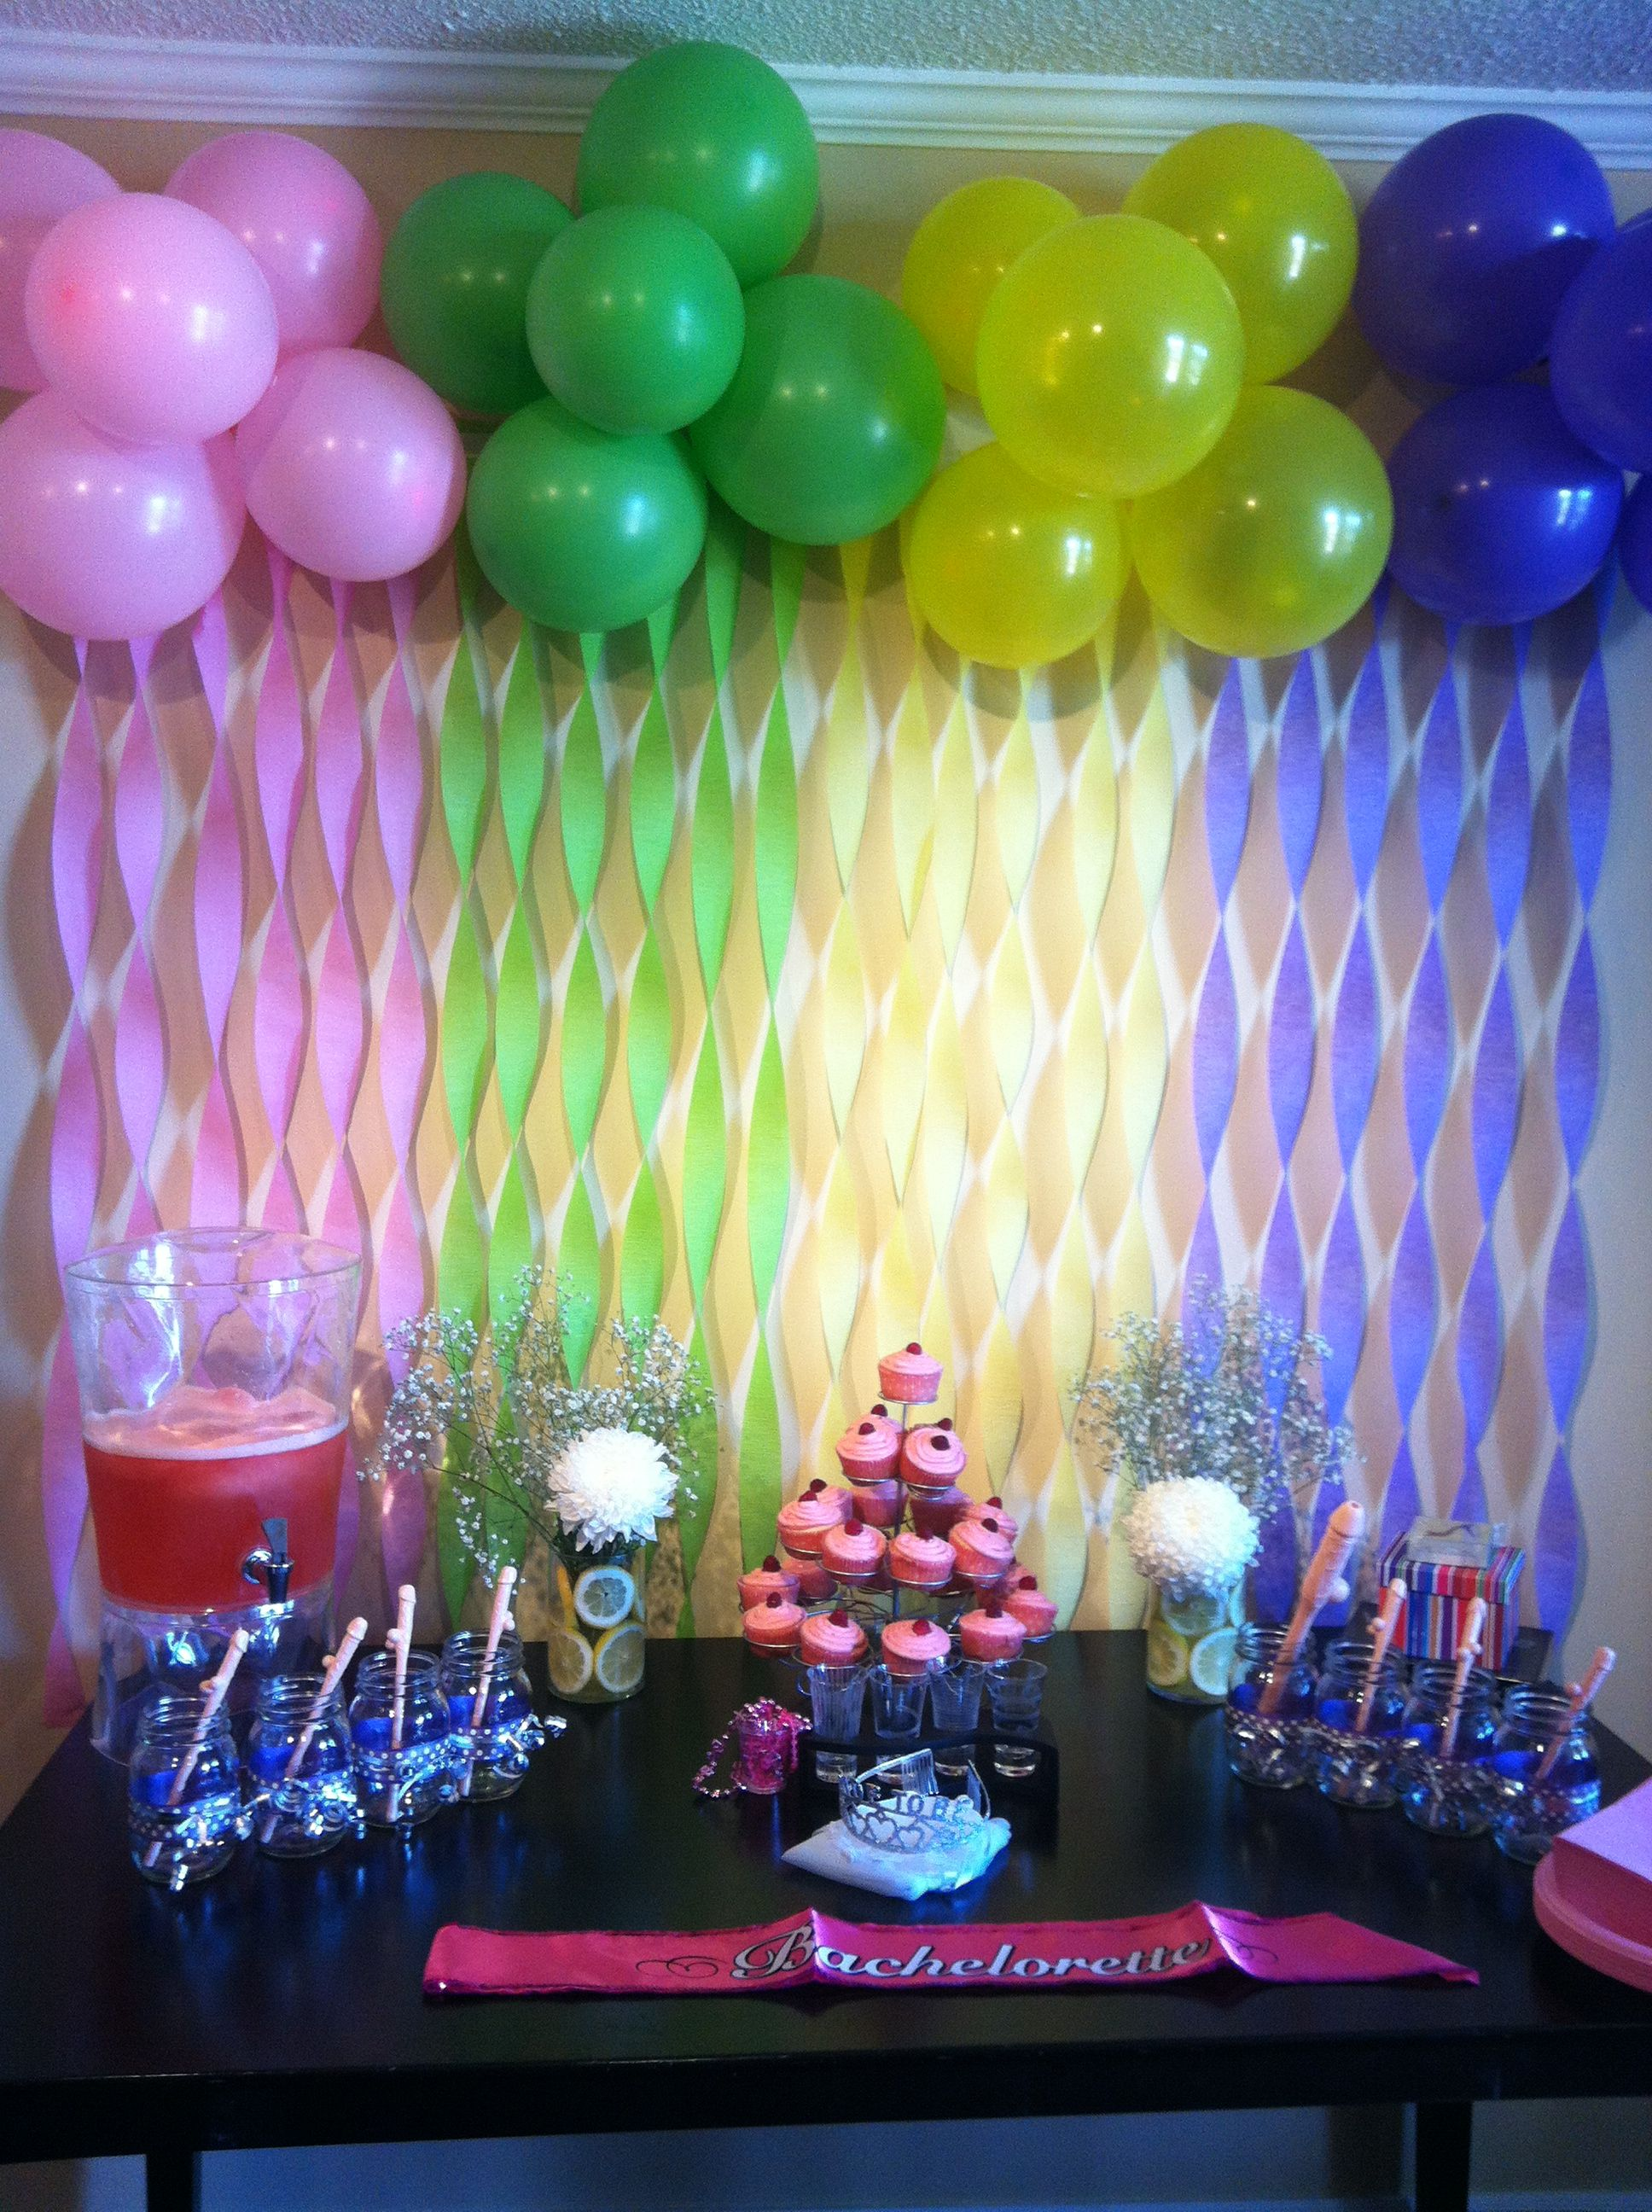 Bachelorette Party Decor Homemade Party Decorations Birthday